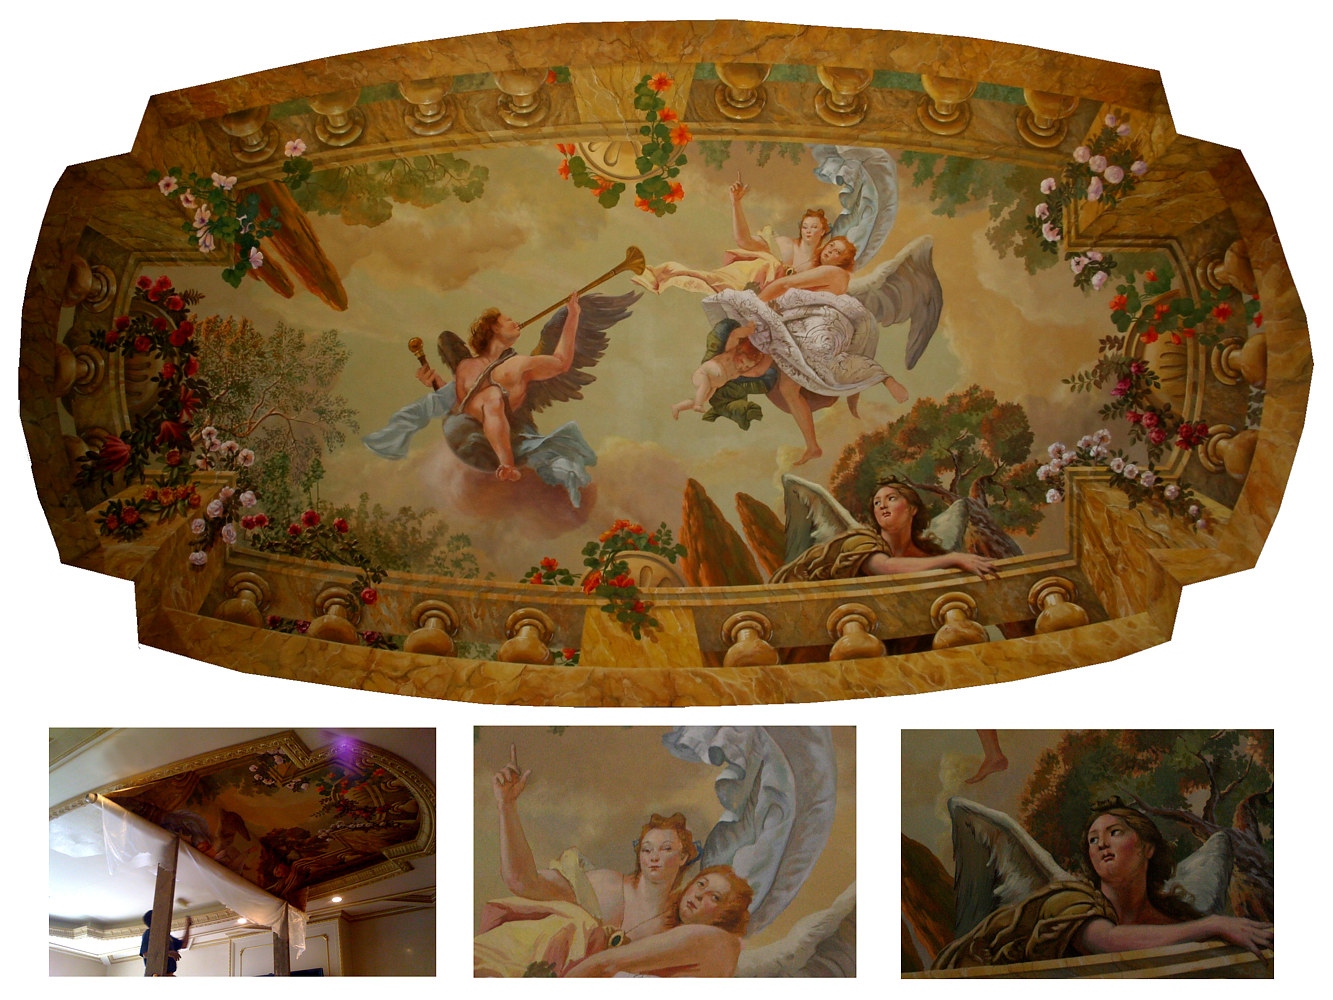 Tiepolo Inspired Ceiling Mural Palos Verdes Estates by Robert Milling